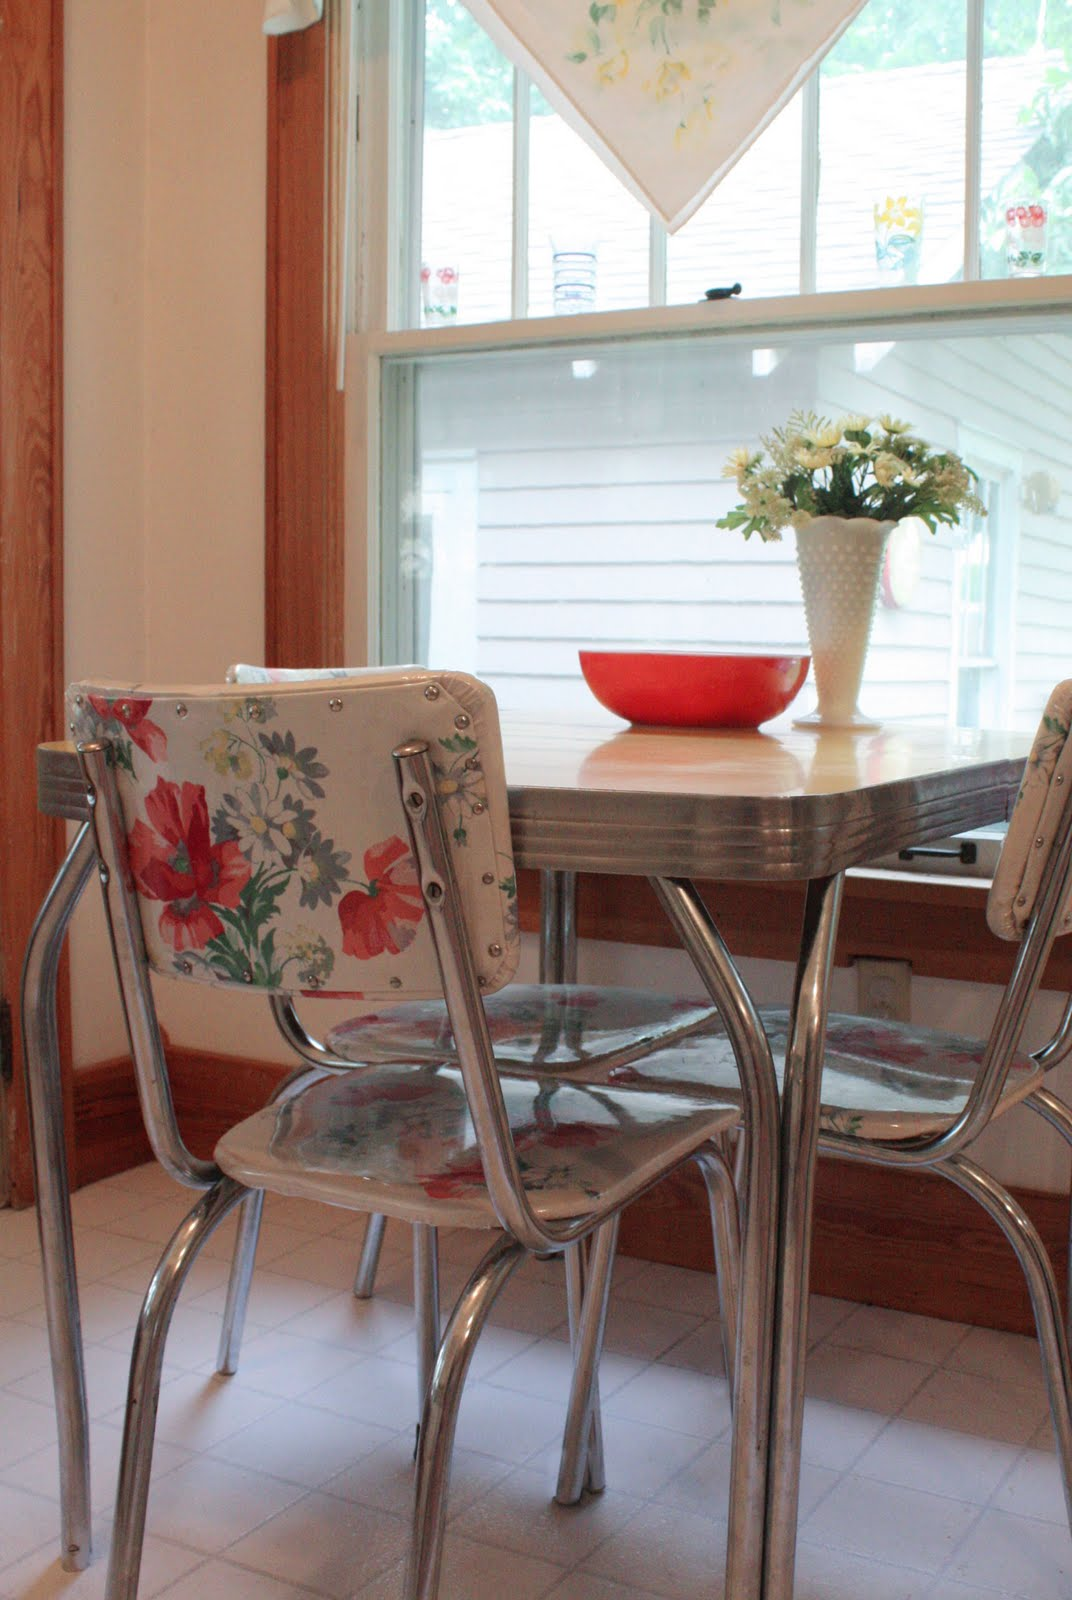 Chairs For Kitchen Tables: Amy J. Delightful Blog: Using Vintage Tablecloths Part 2